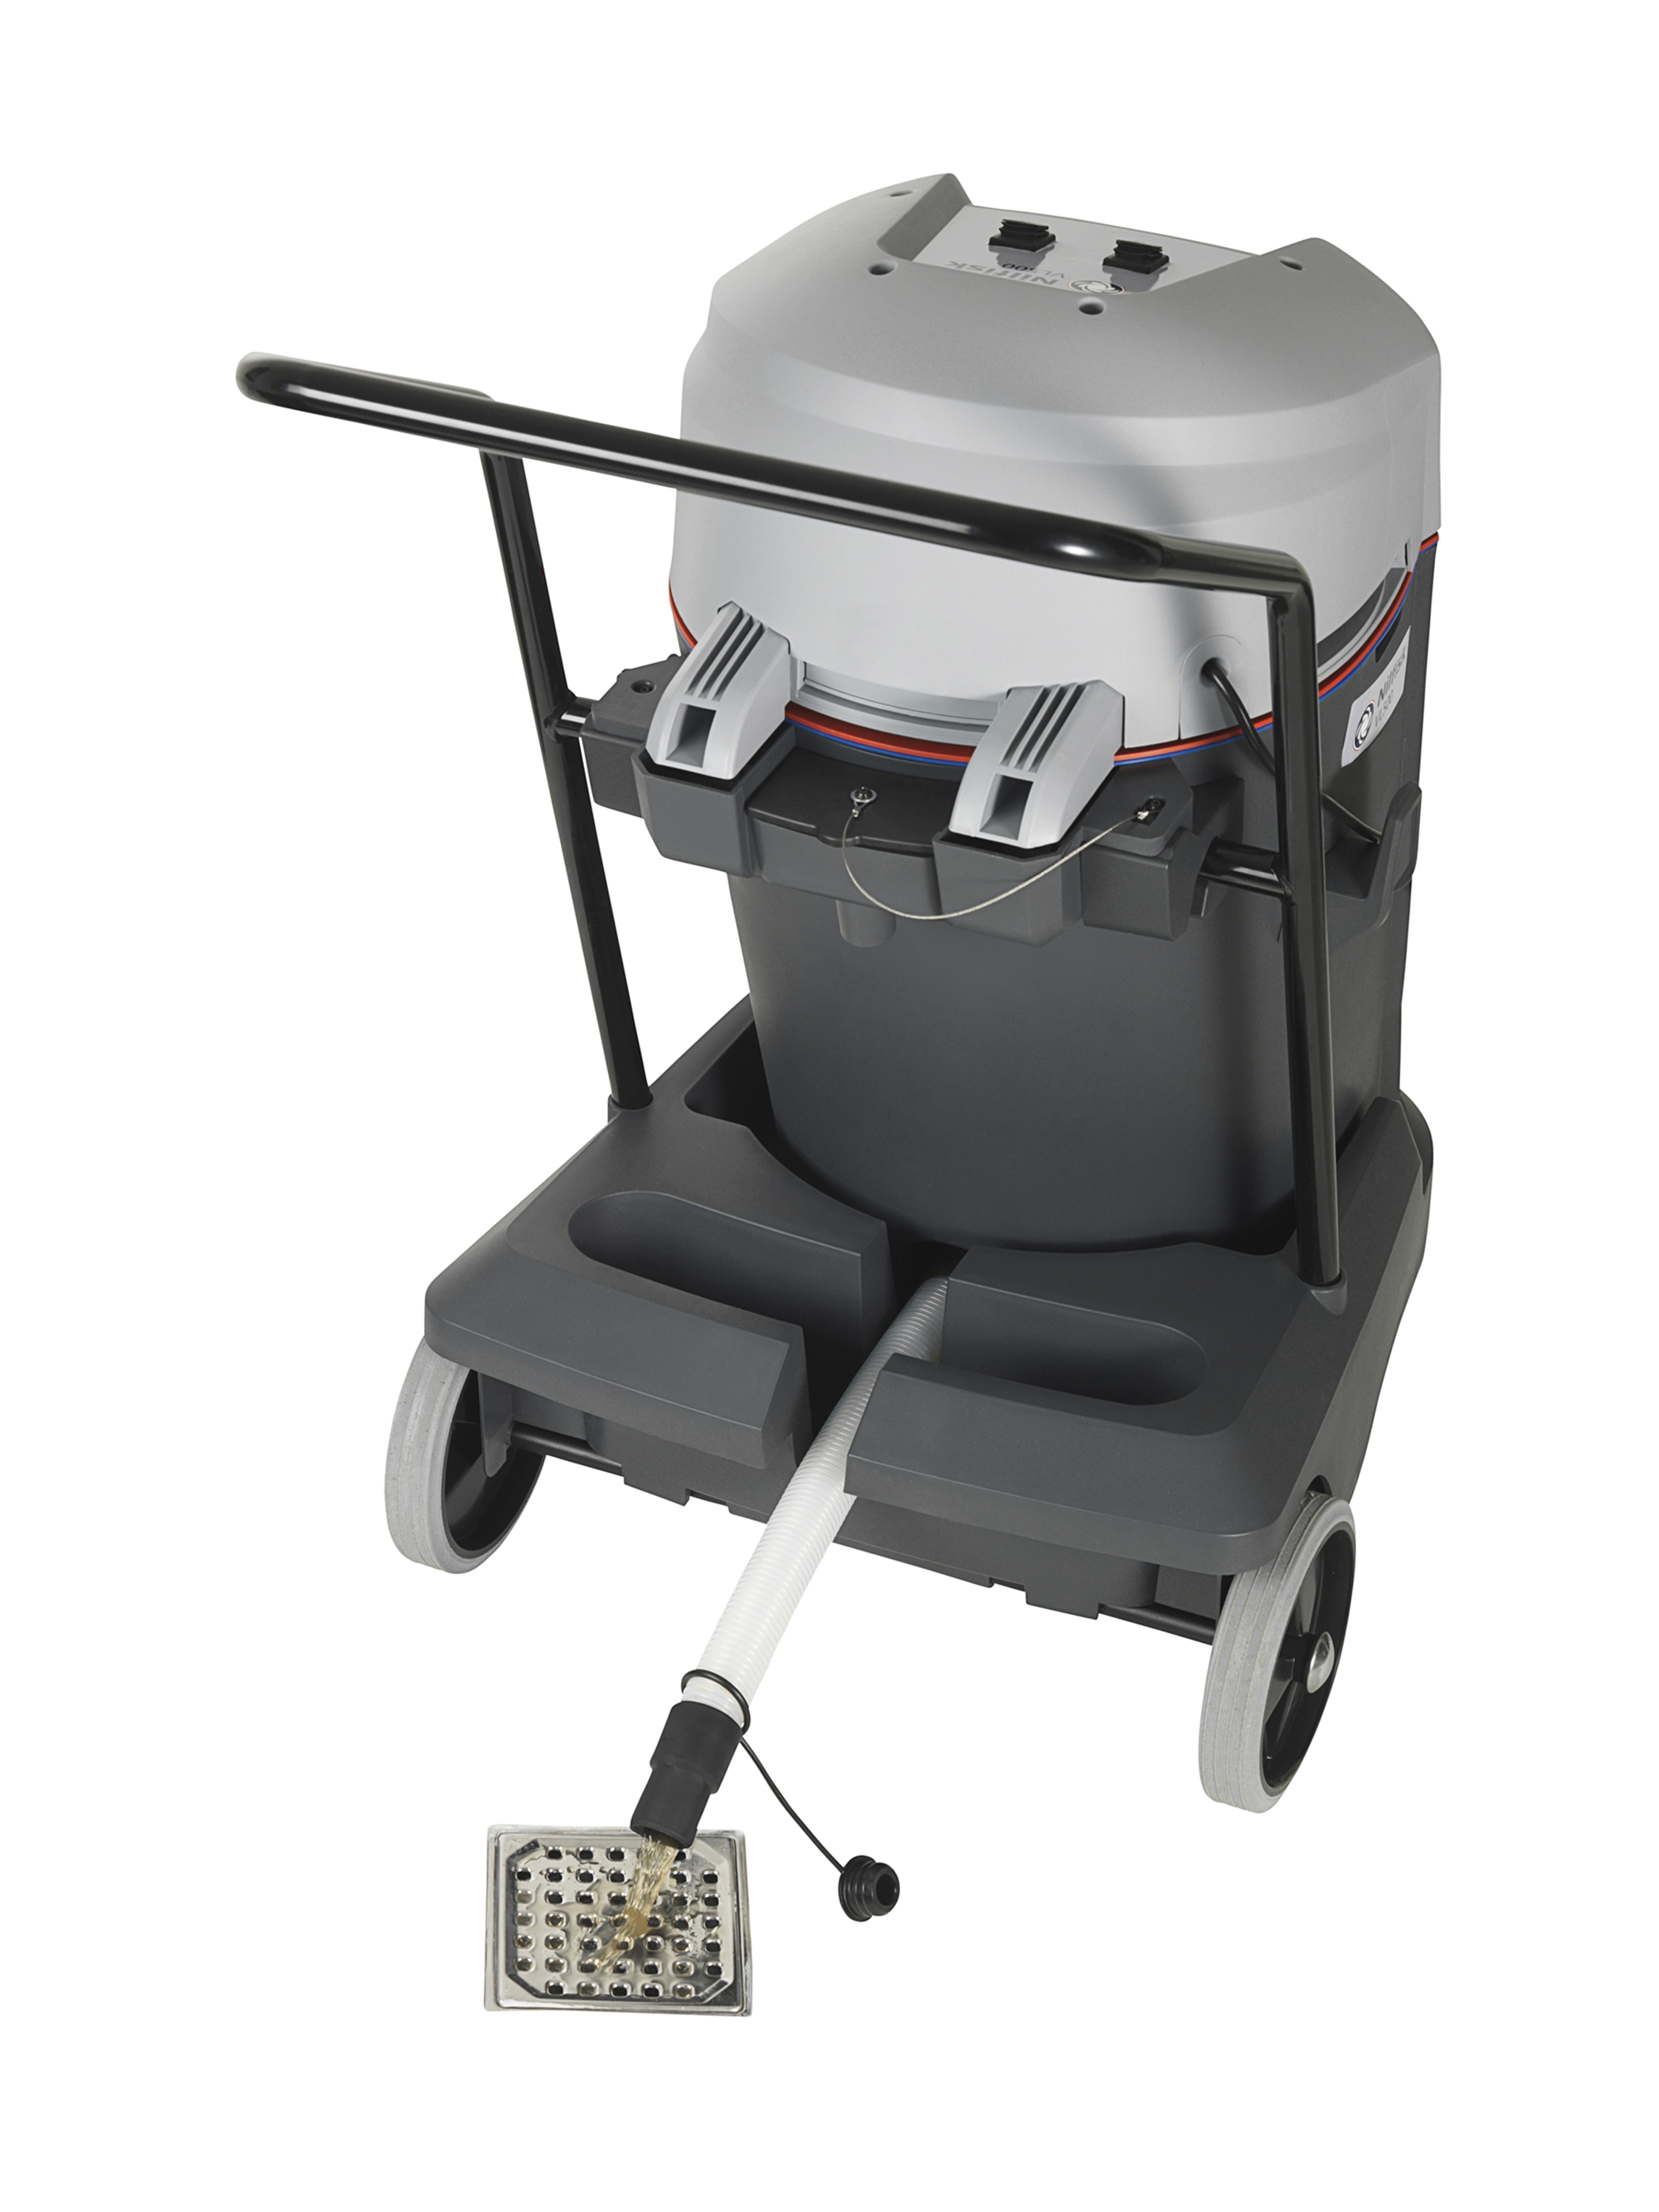 Product, Vacuum cleaners, Commercial vacuum cleaners, Wet and dry vacuum cleaners, Nilfisk, VL500 55-2 EDF 220-240V/50 UK